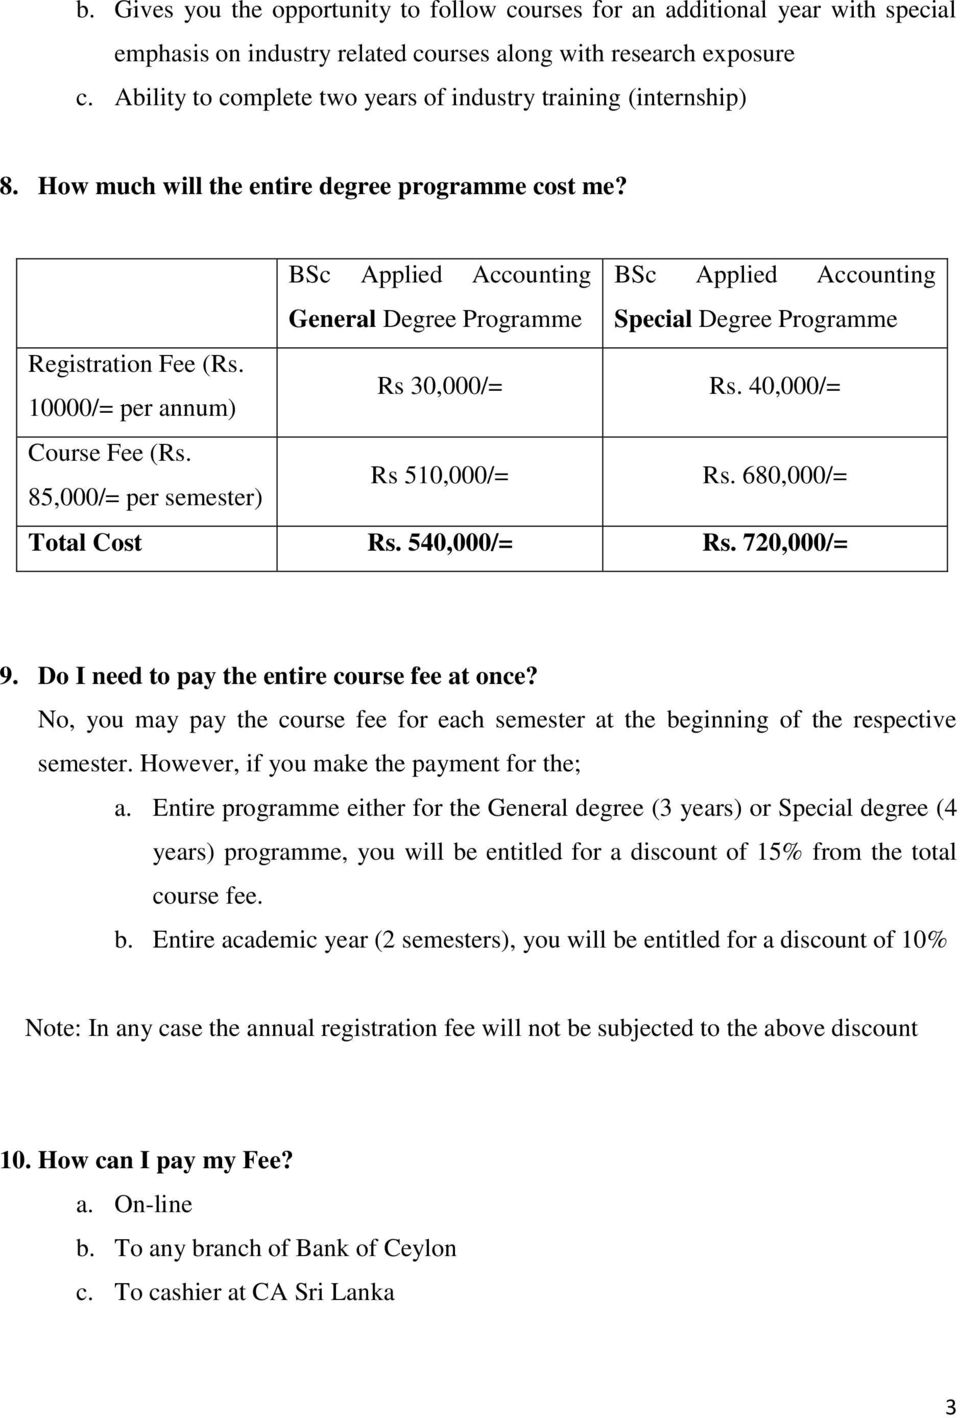 BSc Applied Accounting BSc Applied Accounting General Degree Programme Special Degree Programme Registration Fee (Rs. 10000/= per annum) Rs 30,000/= Rs. 40,000/= Course Fee (Rs.